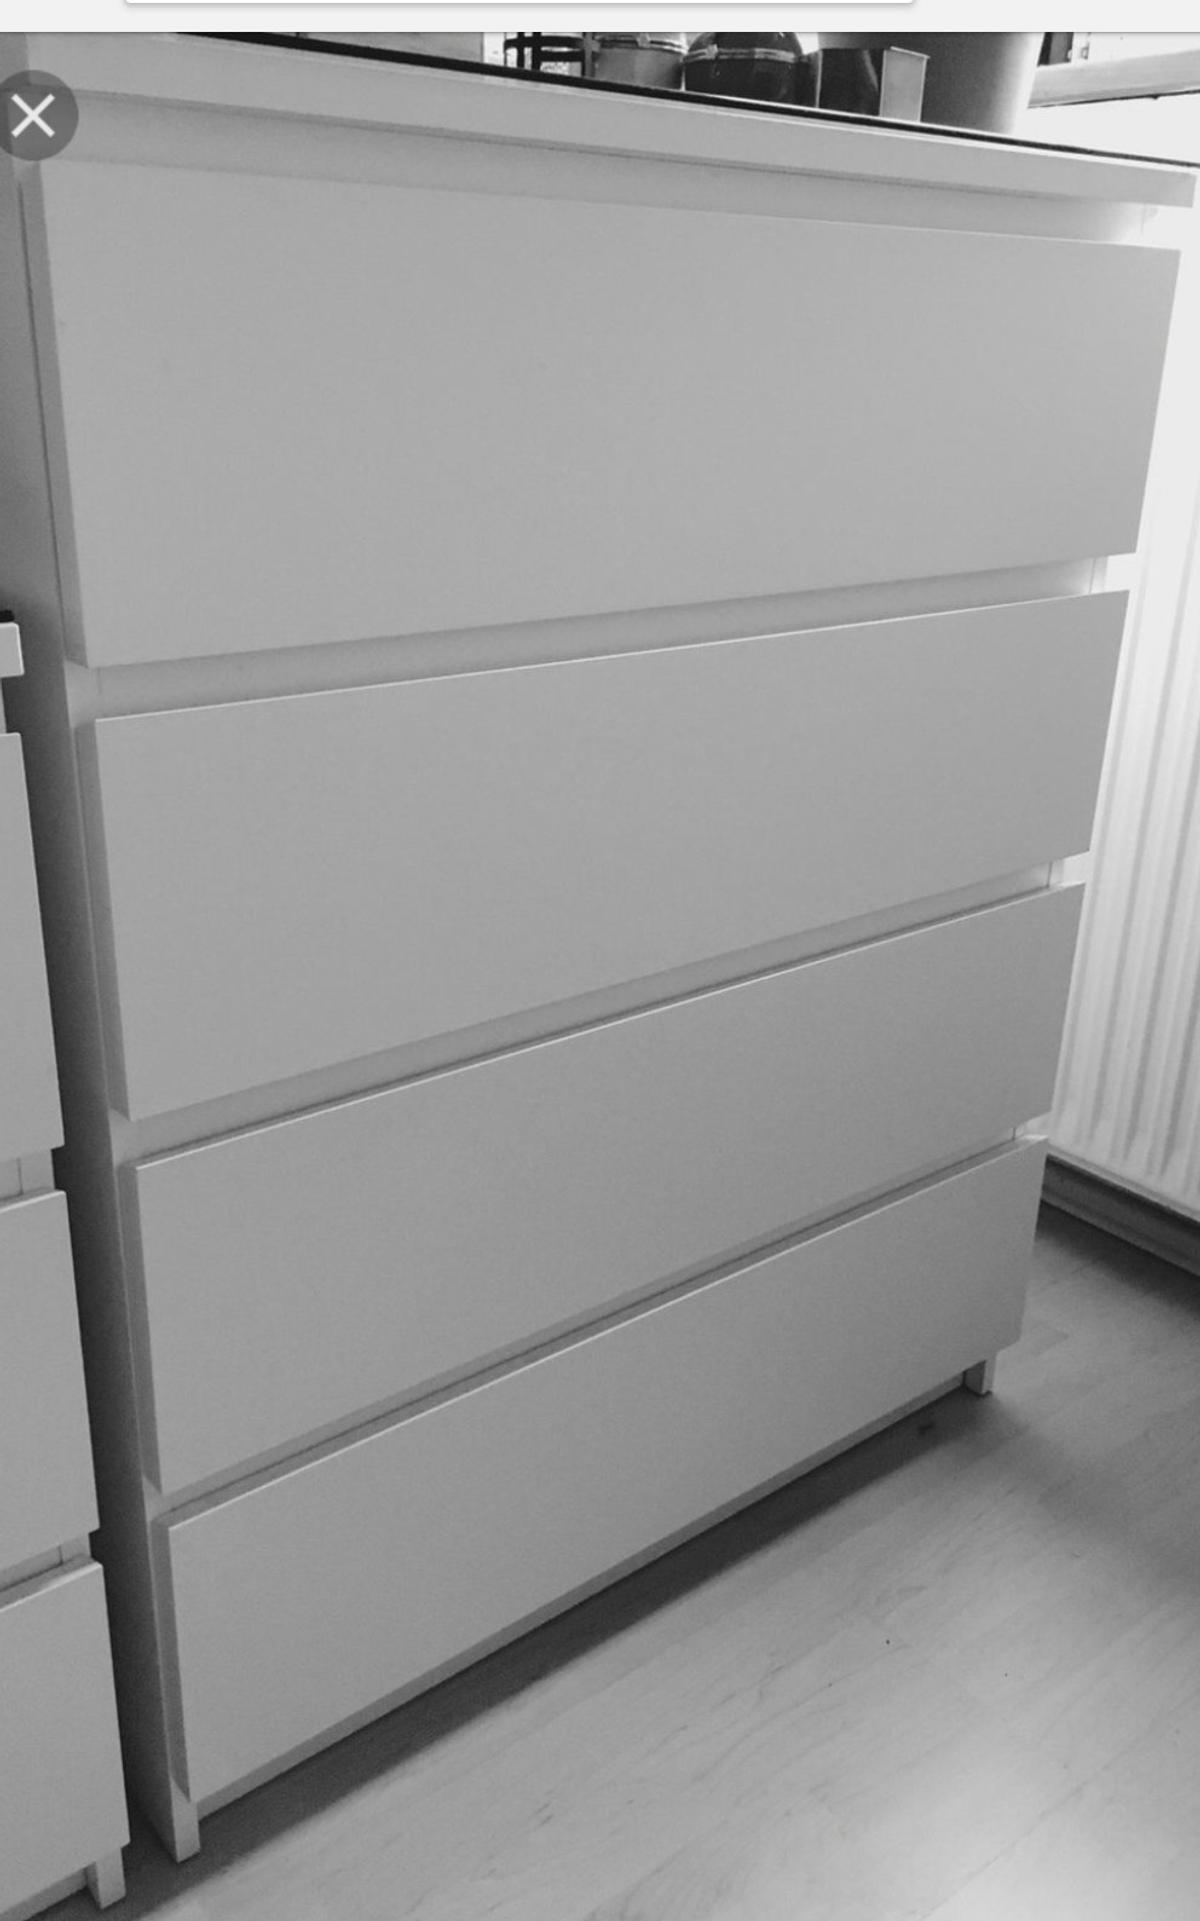 Ikea Malm Kommode 4 Schubladen Weiss Schrank In 67549 Worms Fur 60